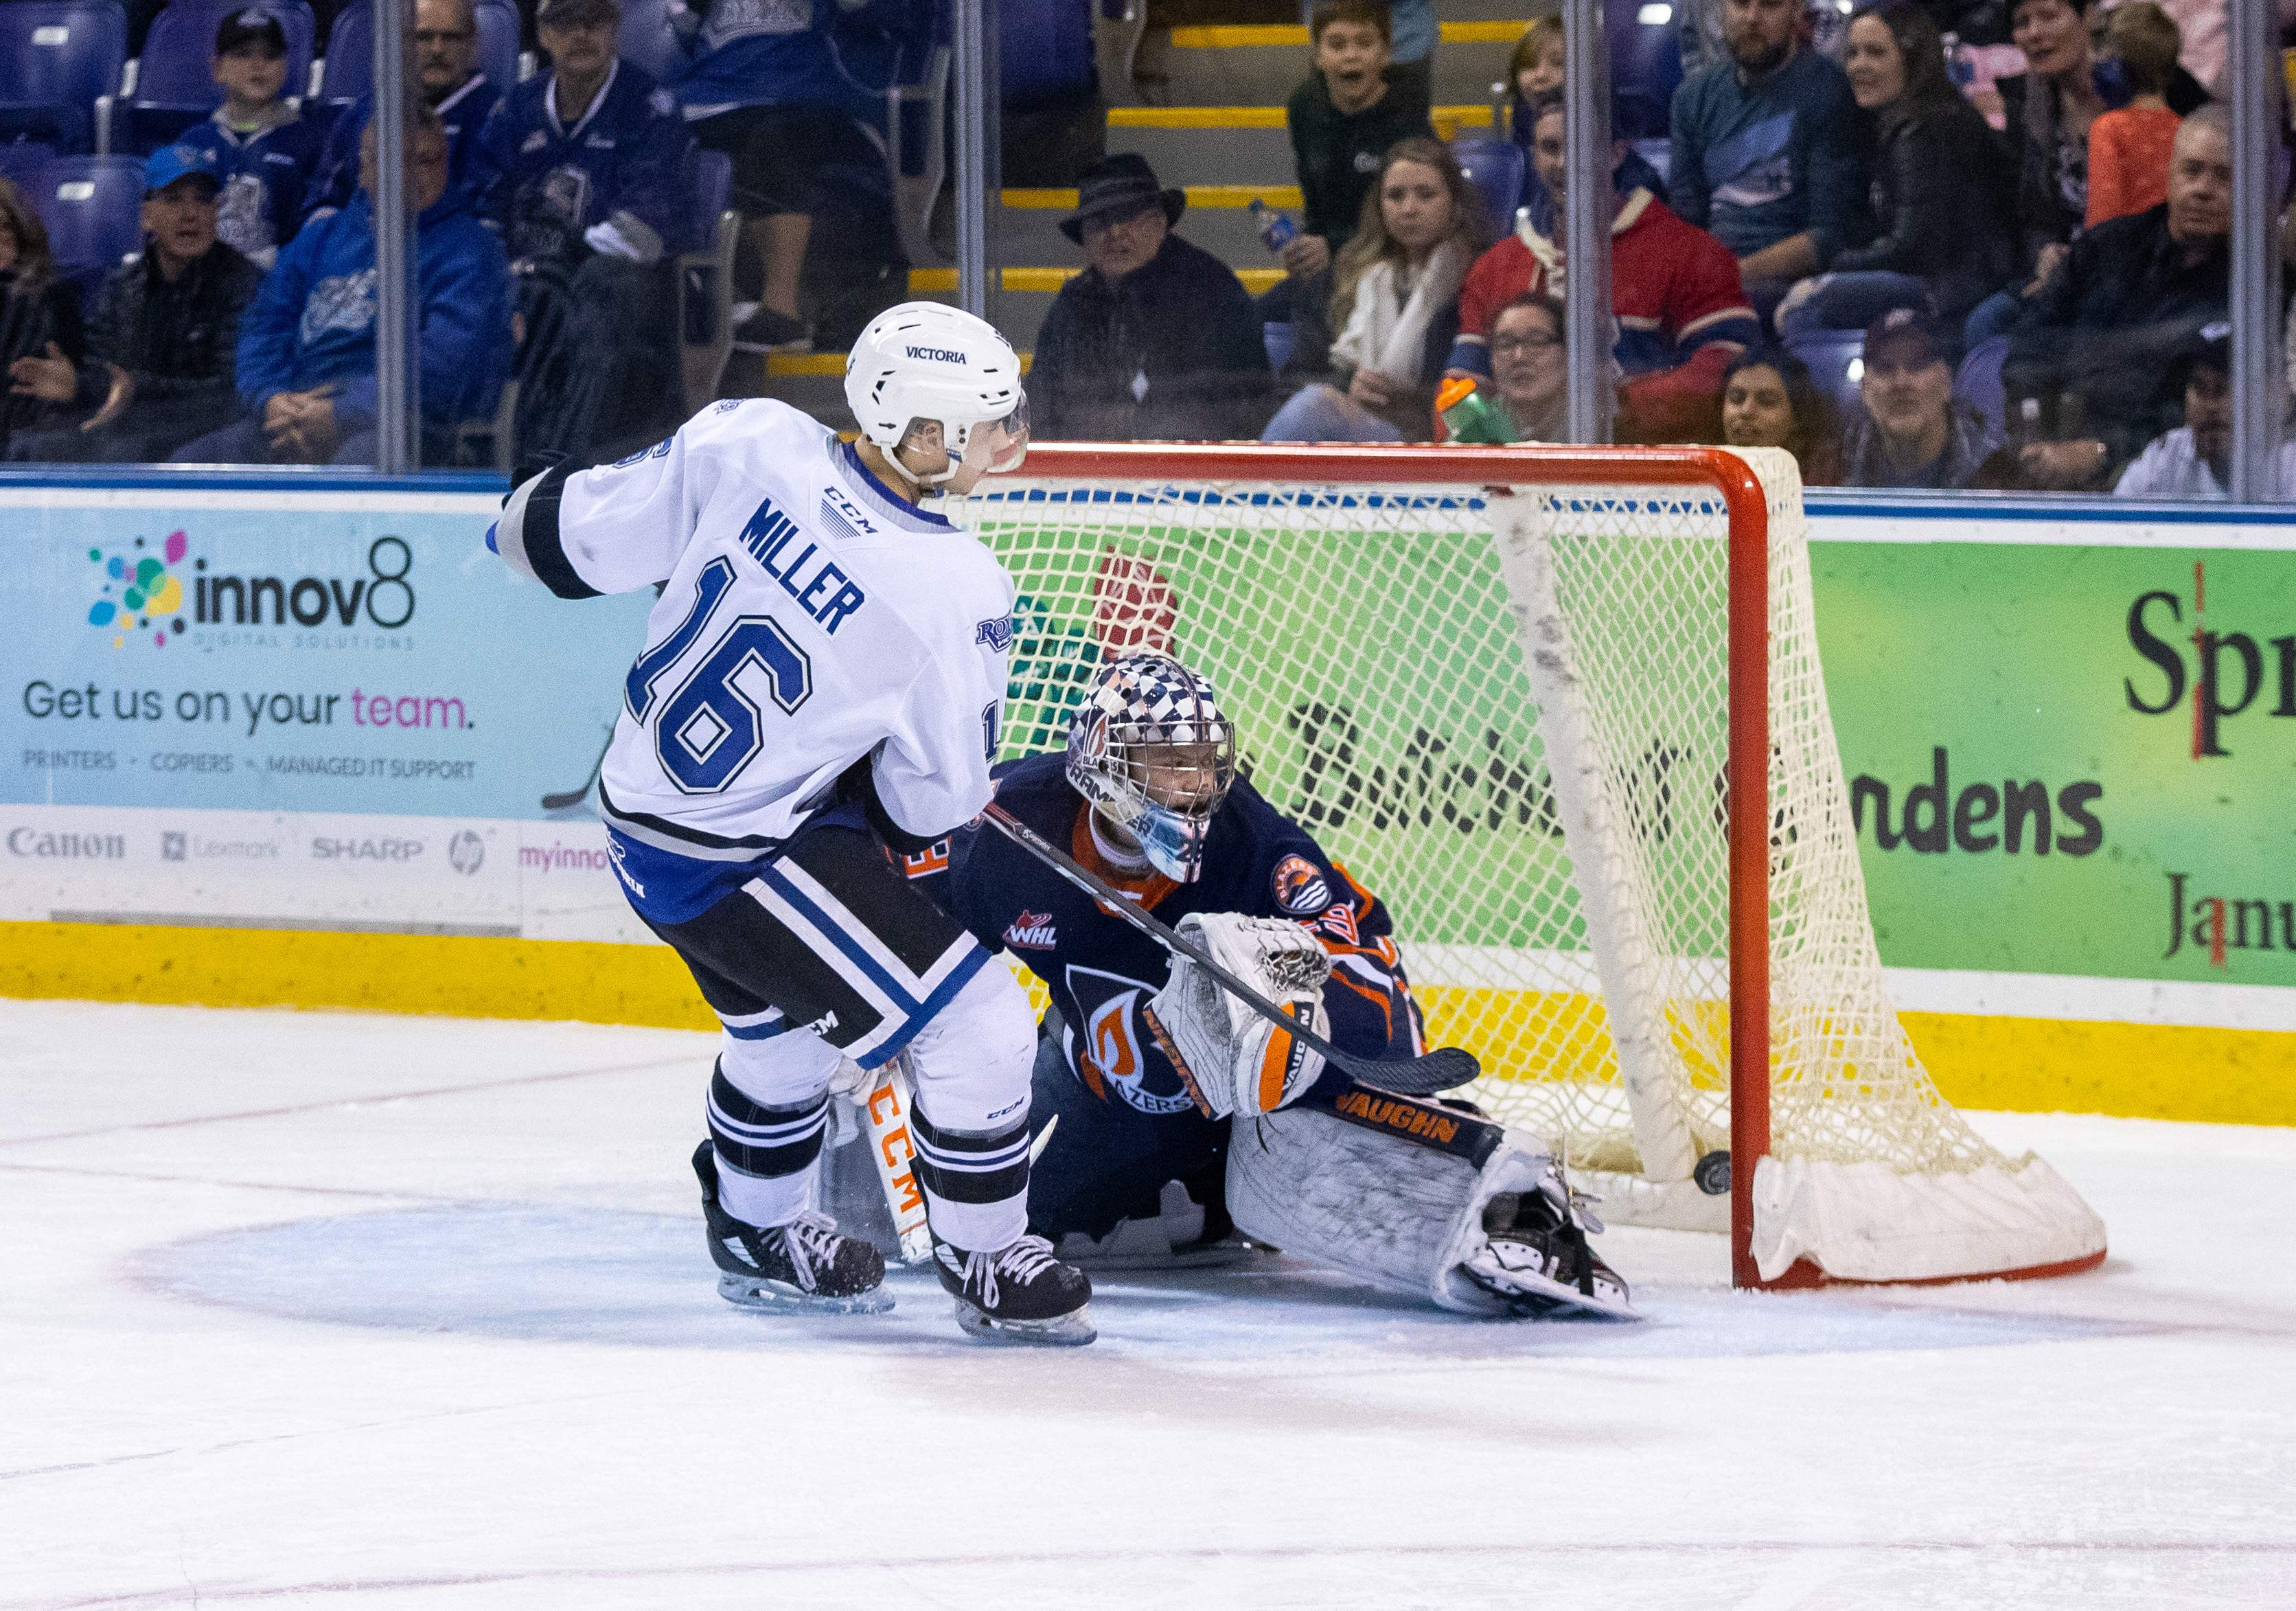 Carson Miller nets the penalty shot to give the Royals a 3-0 lead. Photo by Nathanael Laranjeiras